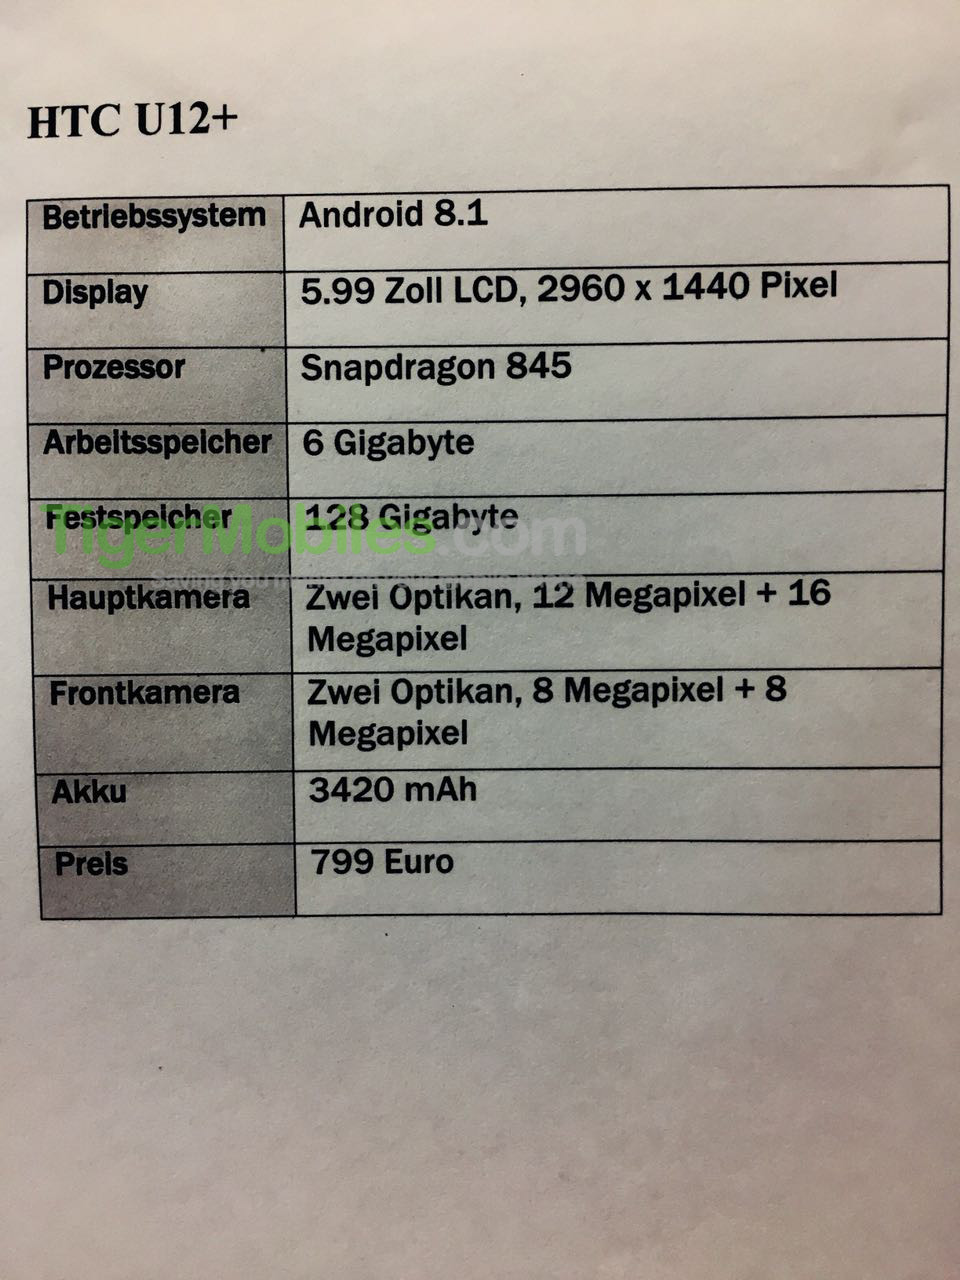 HTC U12 Plus leaked material